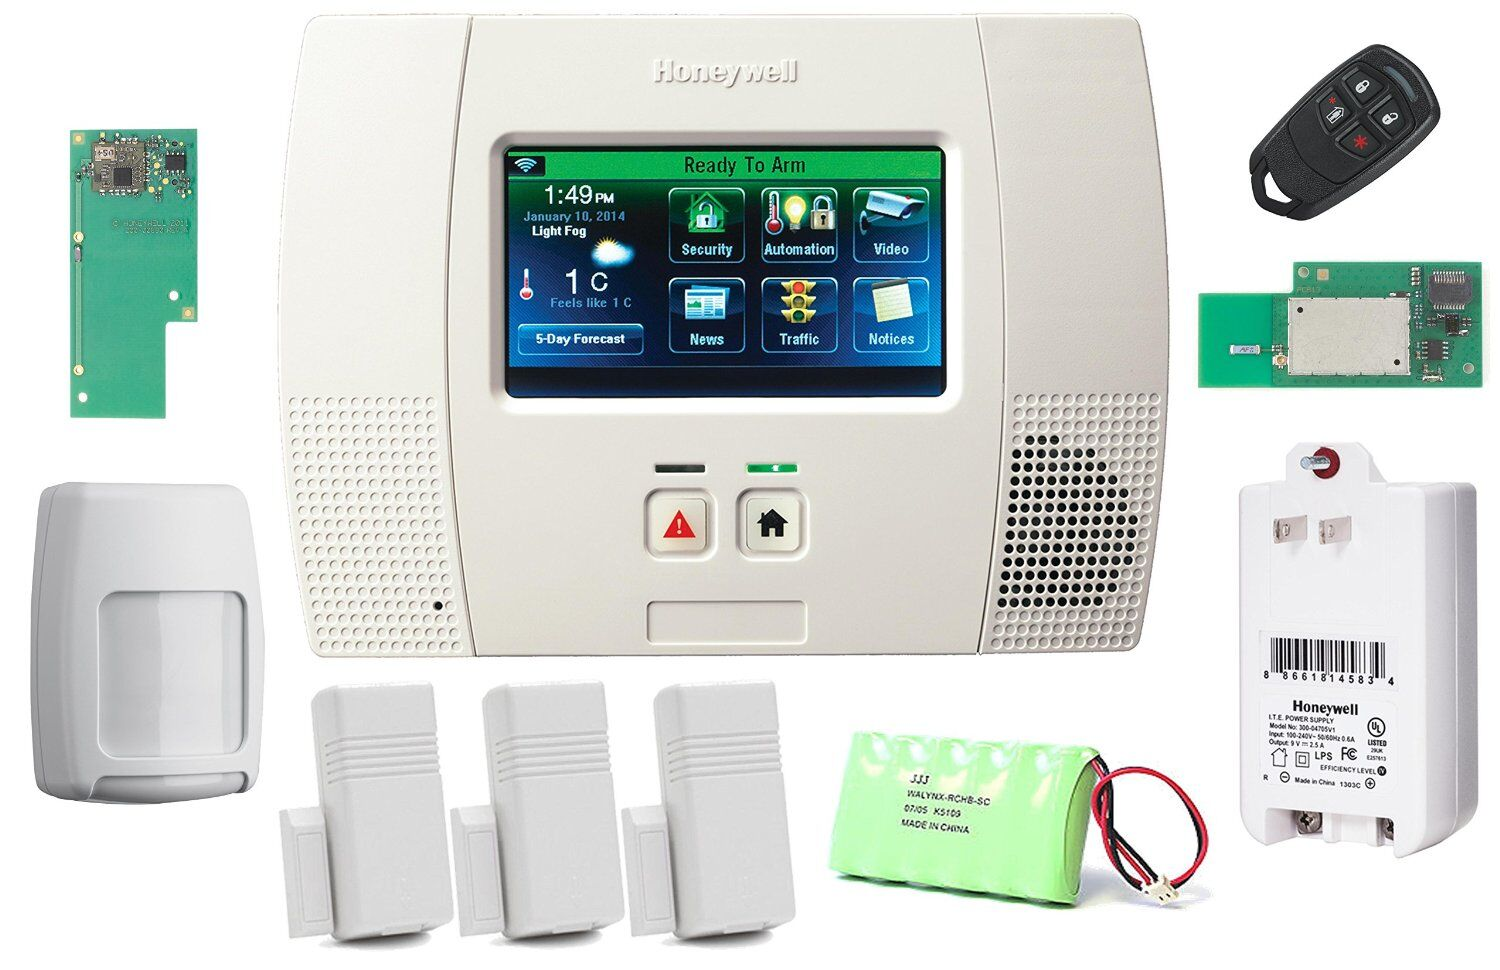 Adt Home Security Systems >> Honeywell Lynx Touch L5200 Wireless Home Security/Automation System